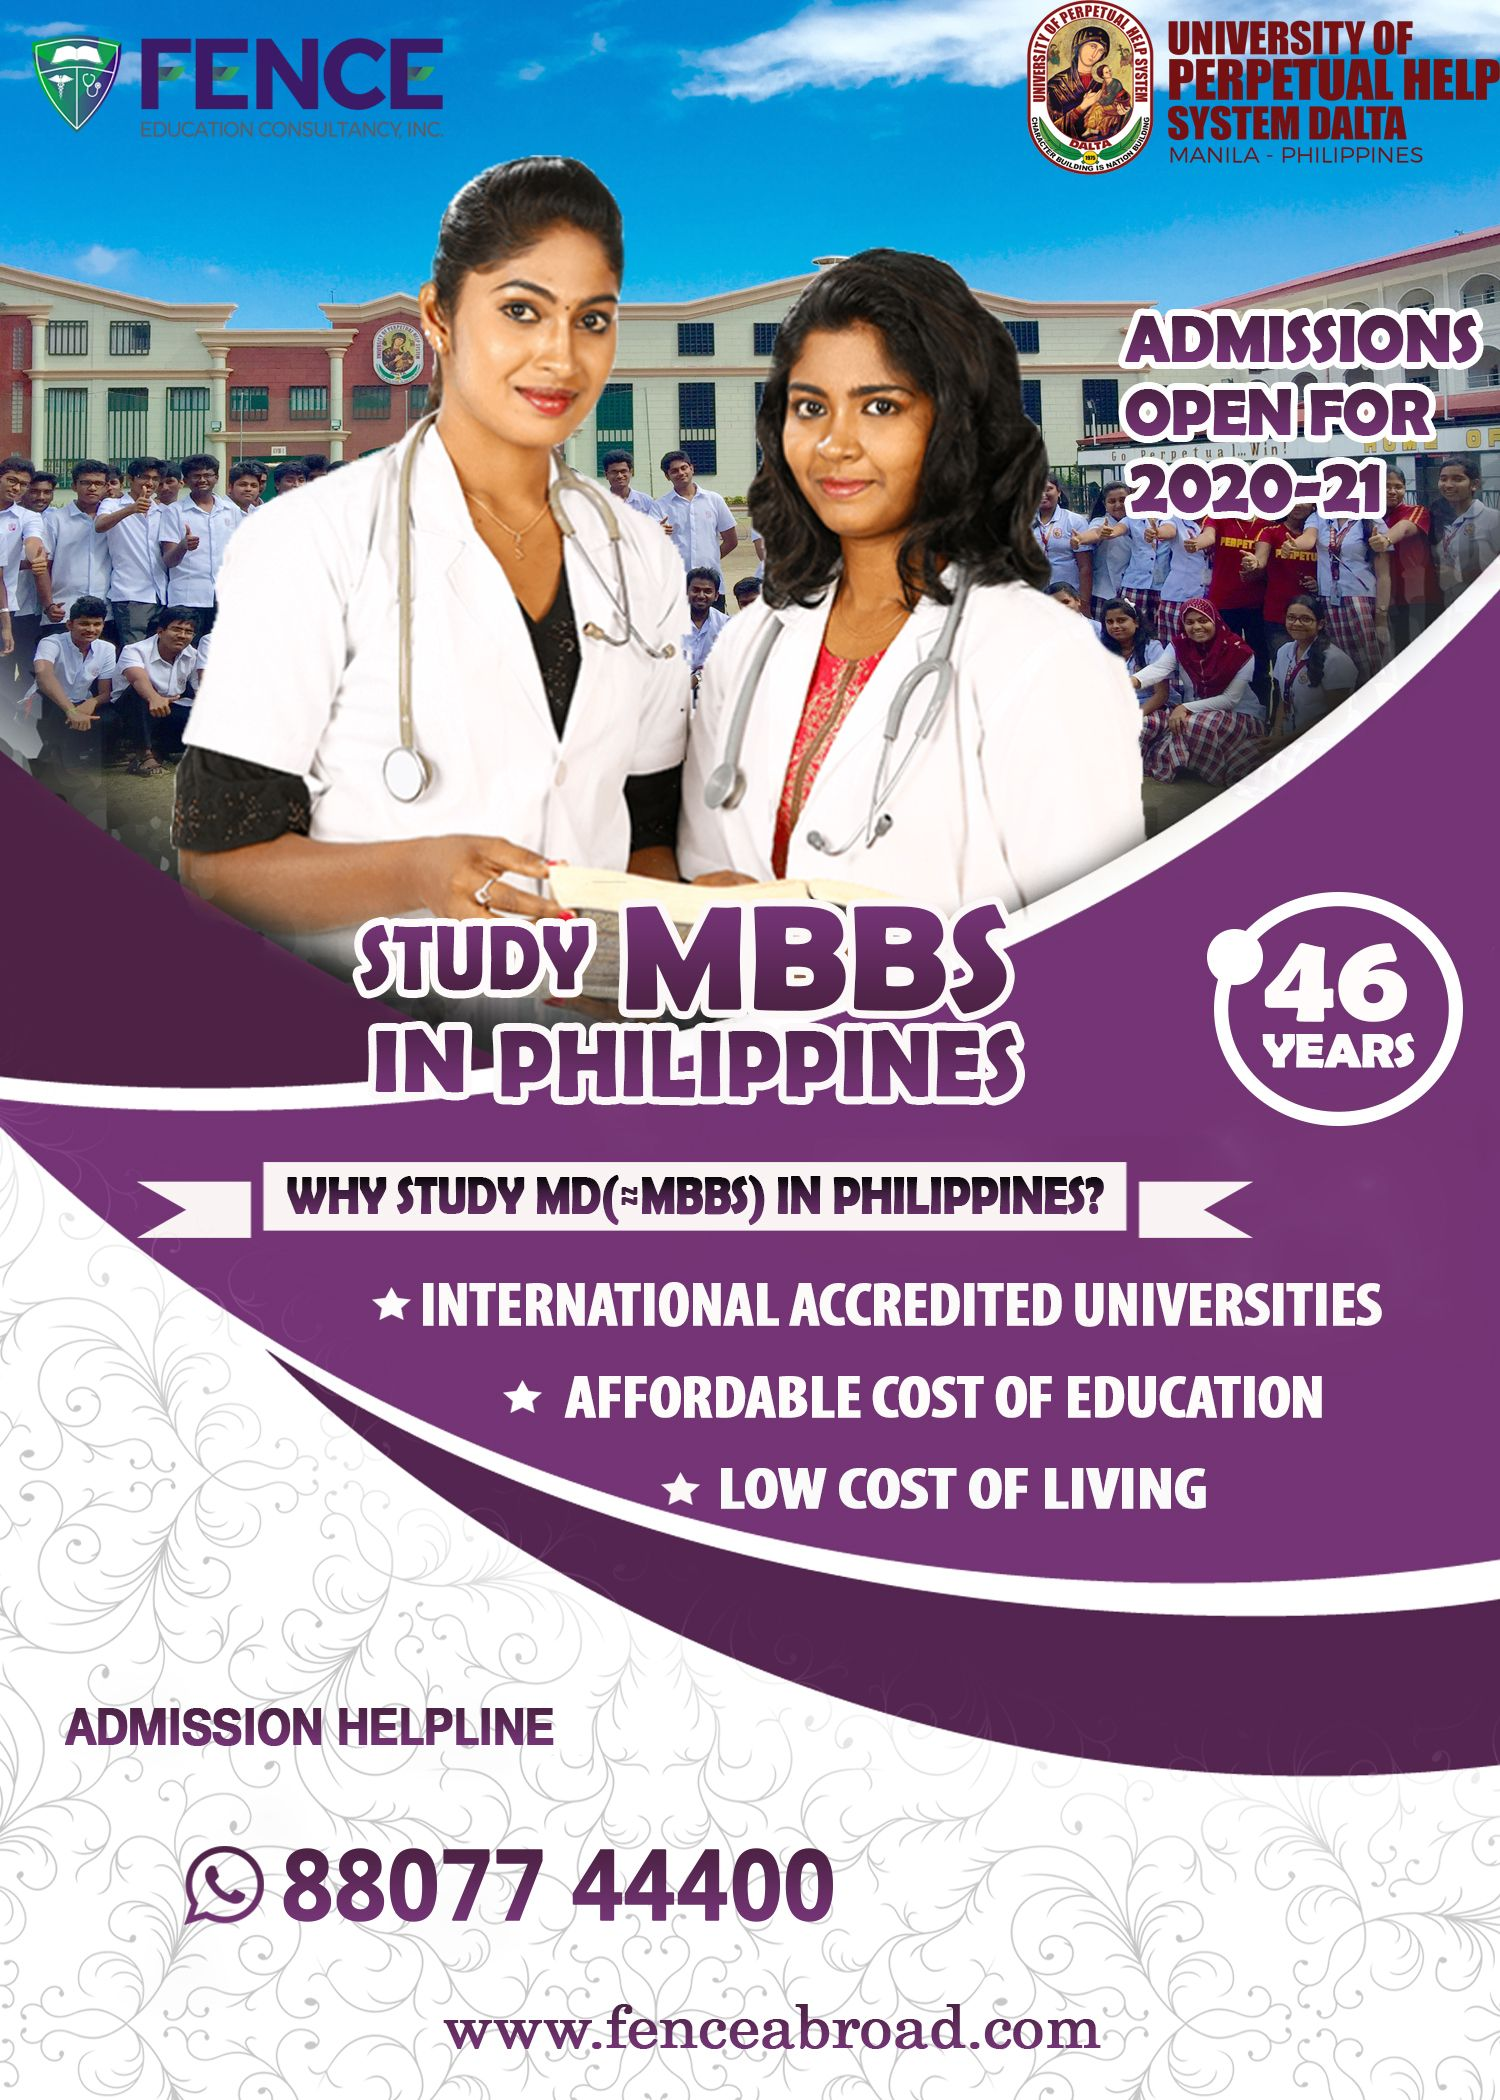 Study Md Mbbs In Philippines In 2020 Studying Medicine Education Medical College